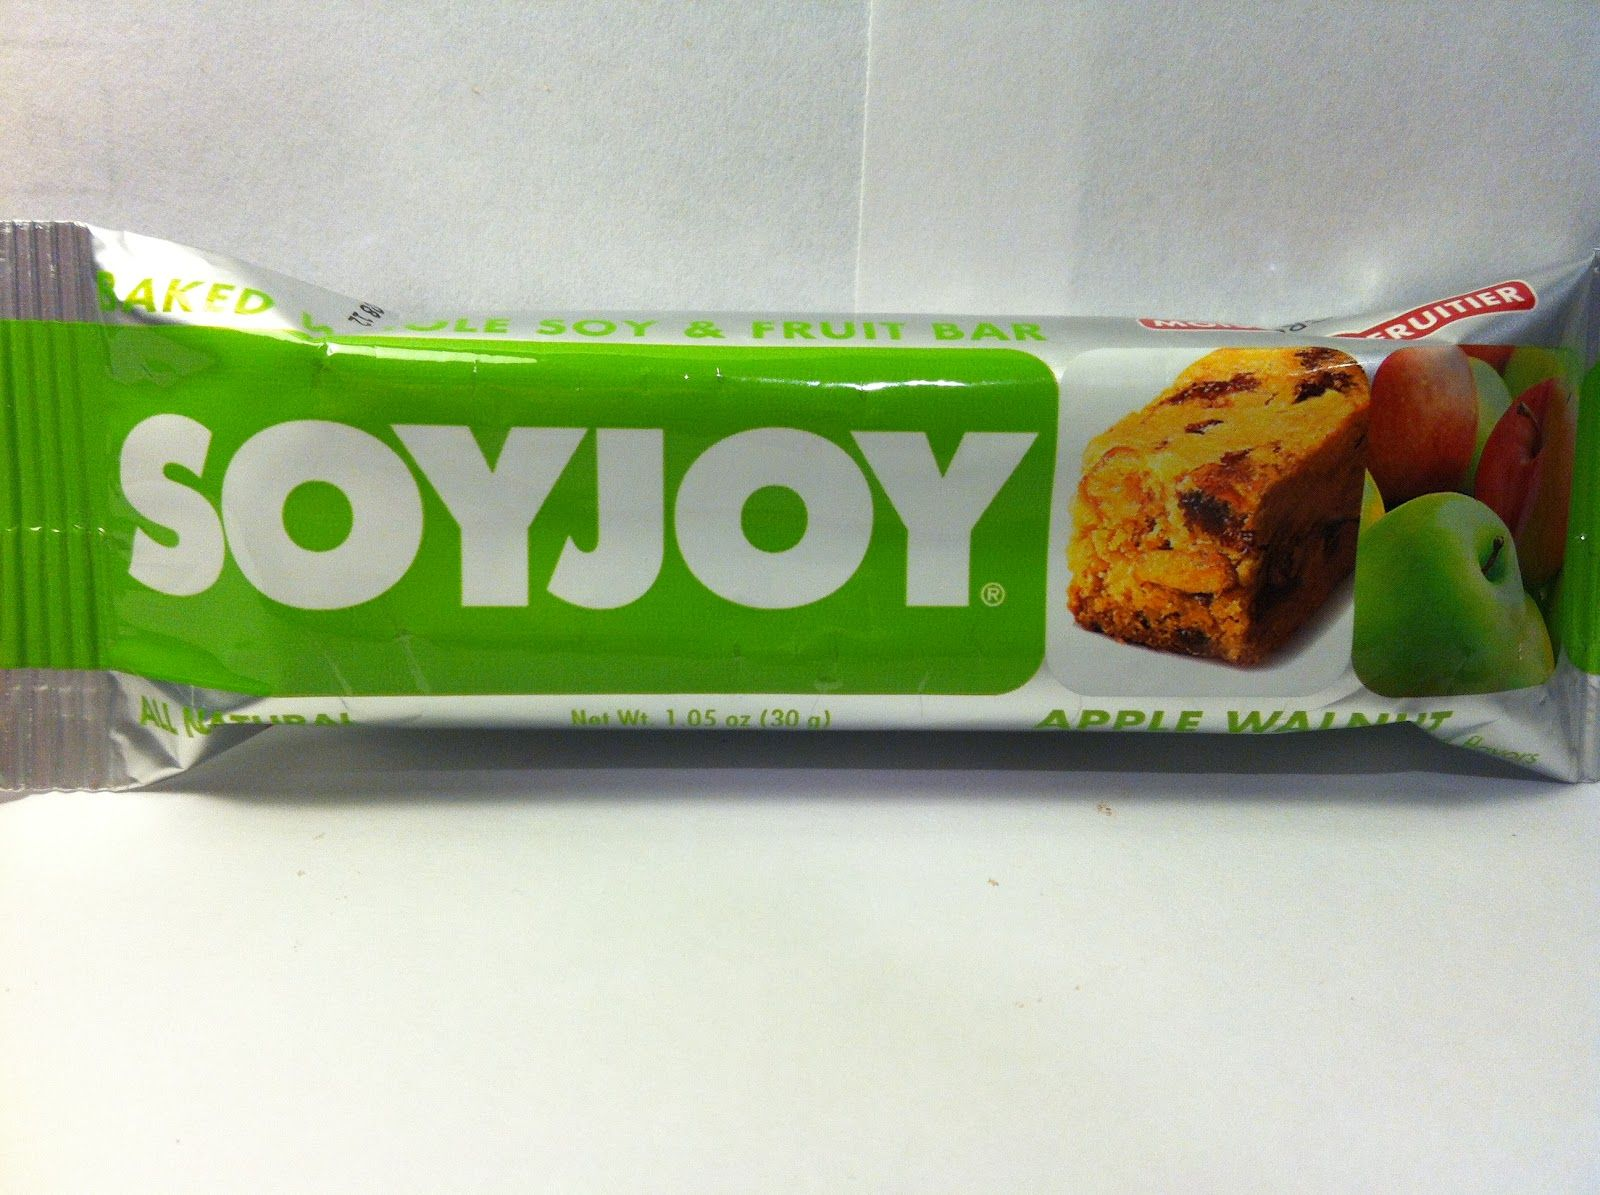 Crazy Food Dude Review: SOYJOY Apple Walnut Baked Soy & Fruit Bar